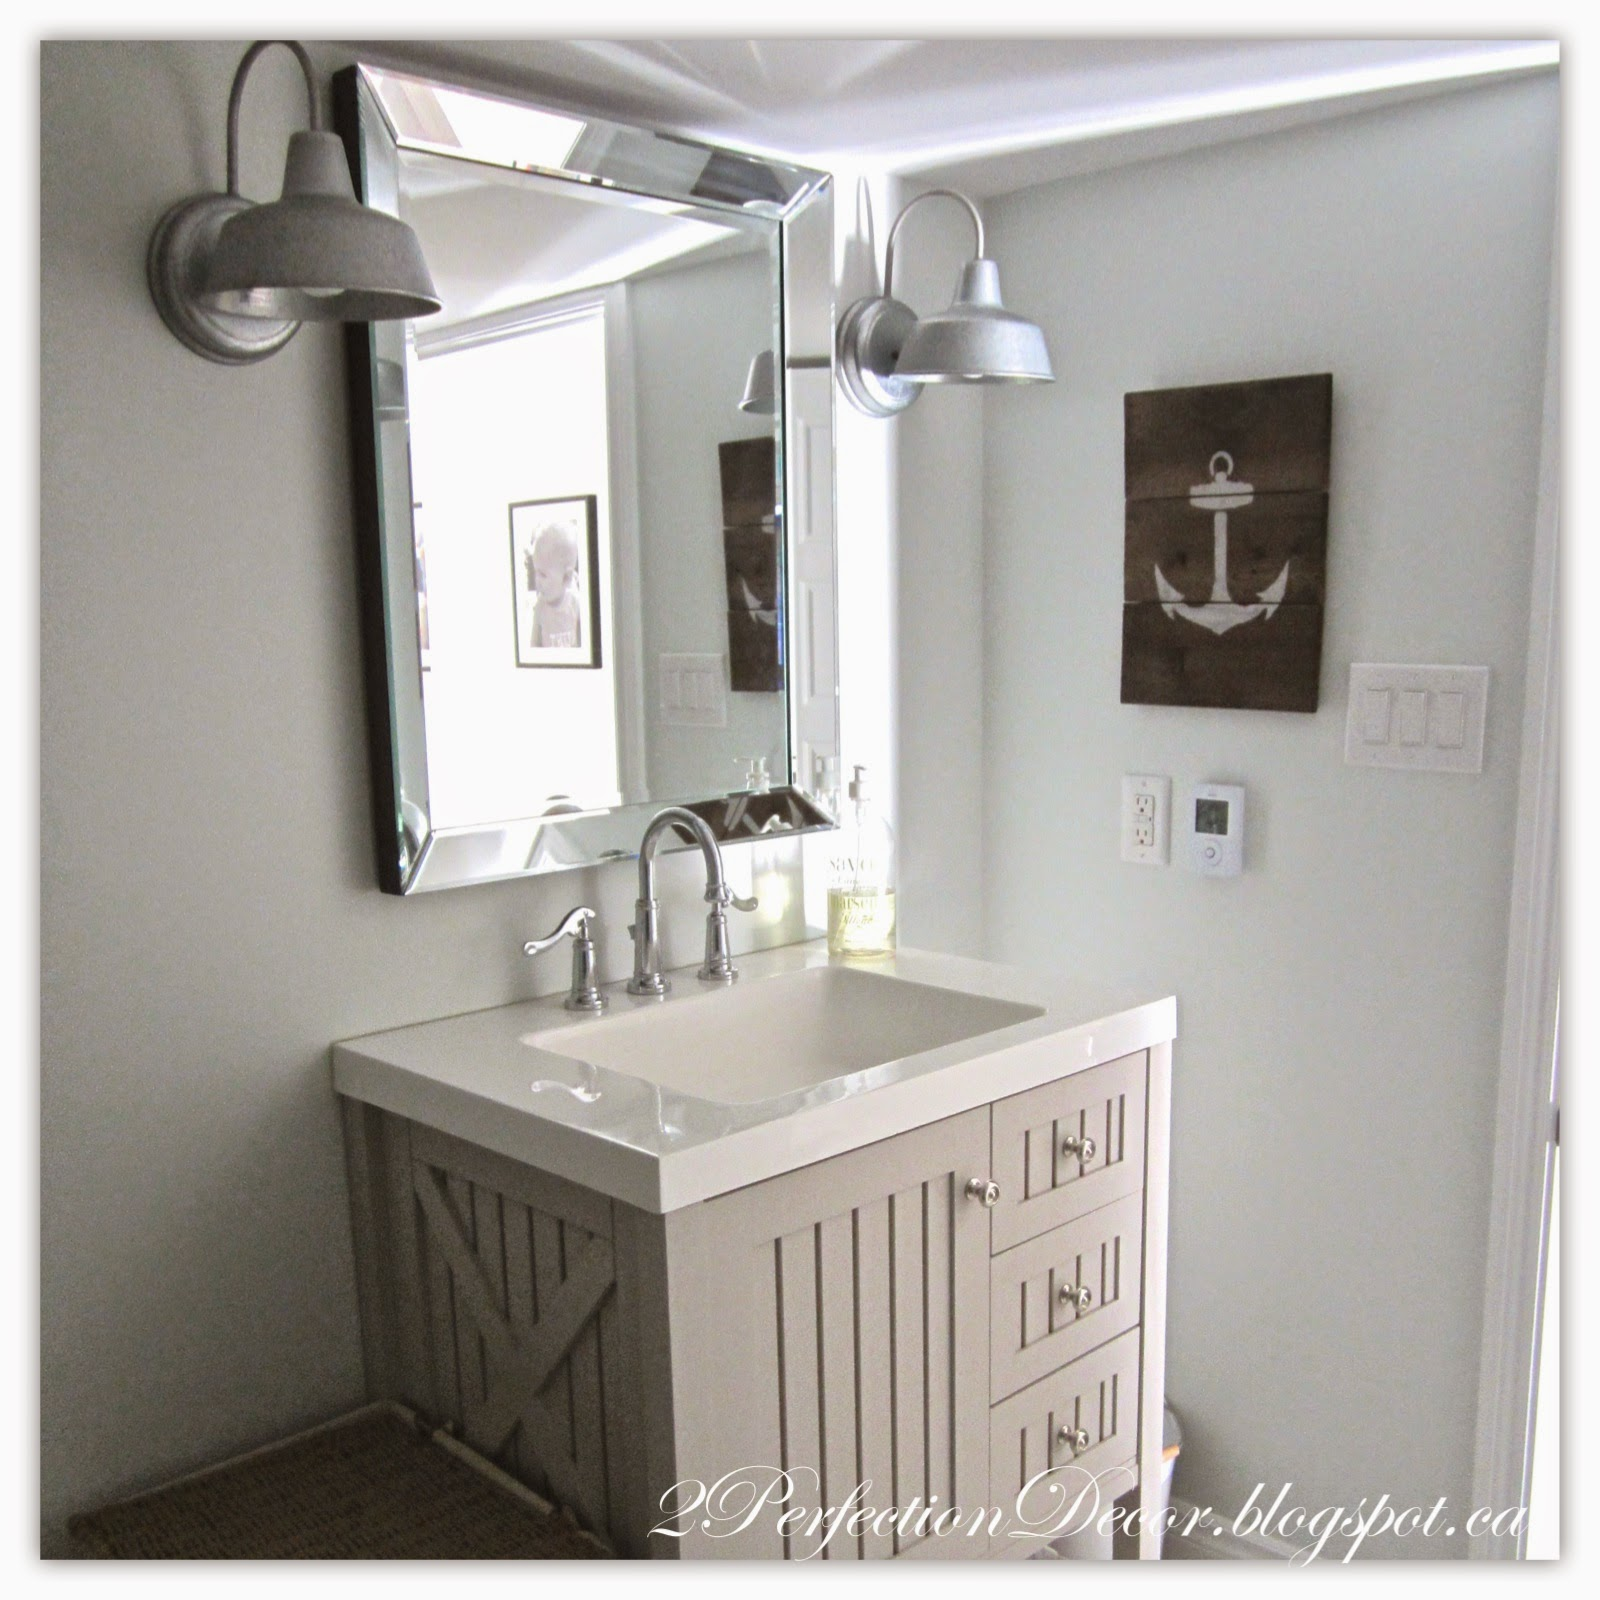 2Perfection Decor: Basement Coastal Bathroom Reveal